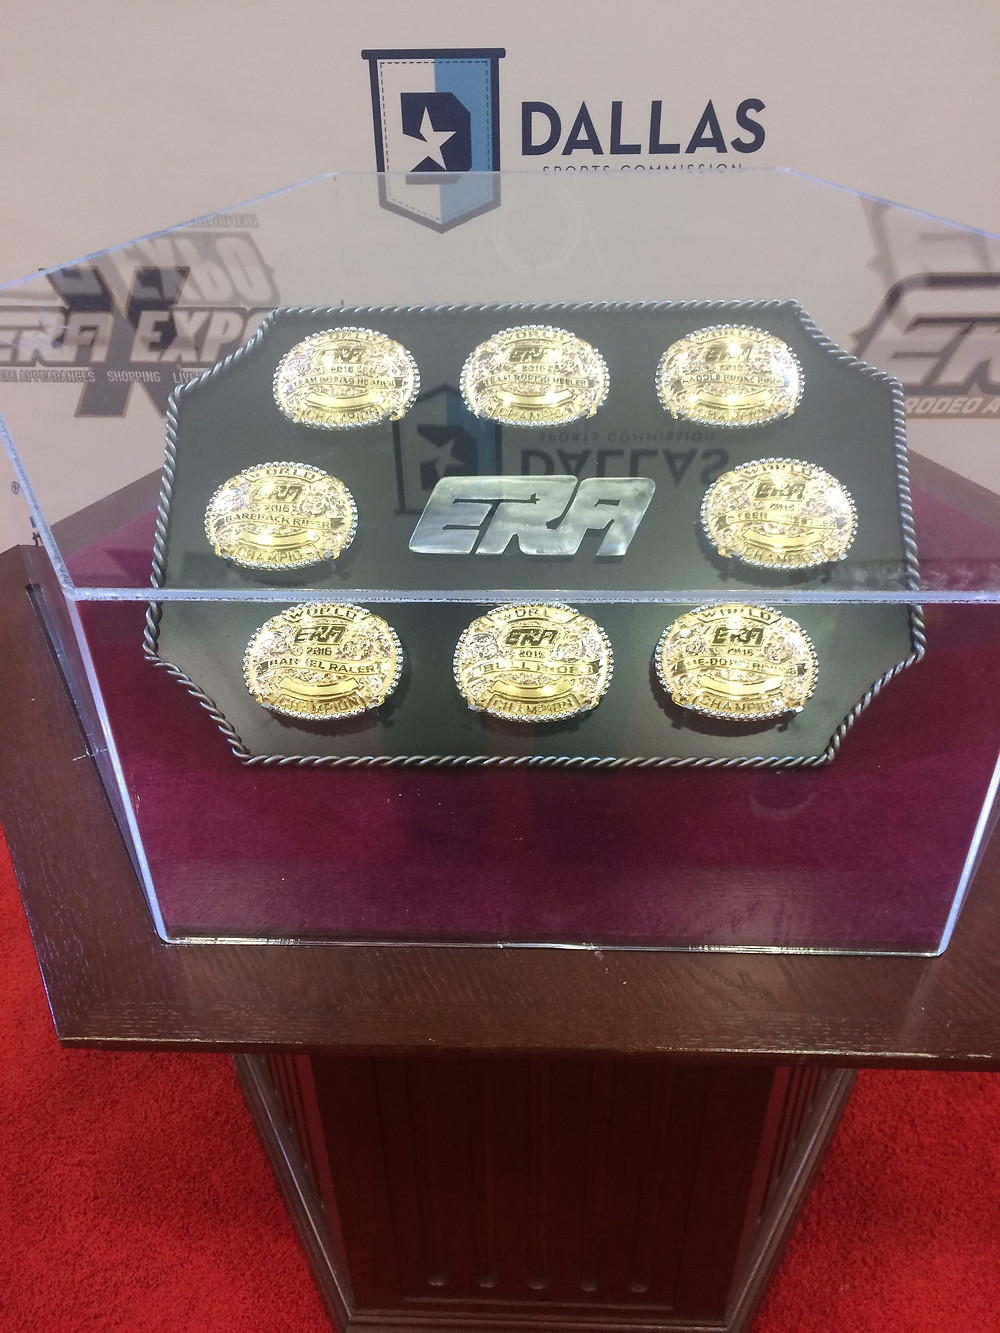 belt buckle display case for rodeo titles champion belt buckles to display